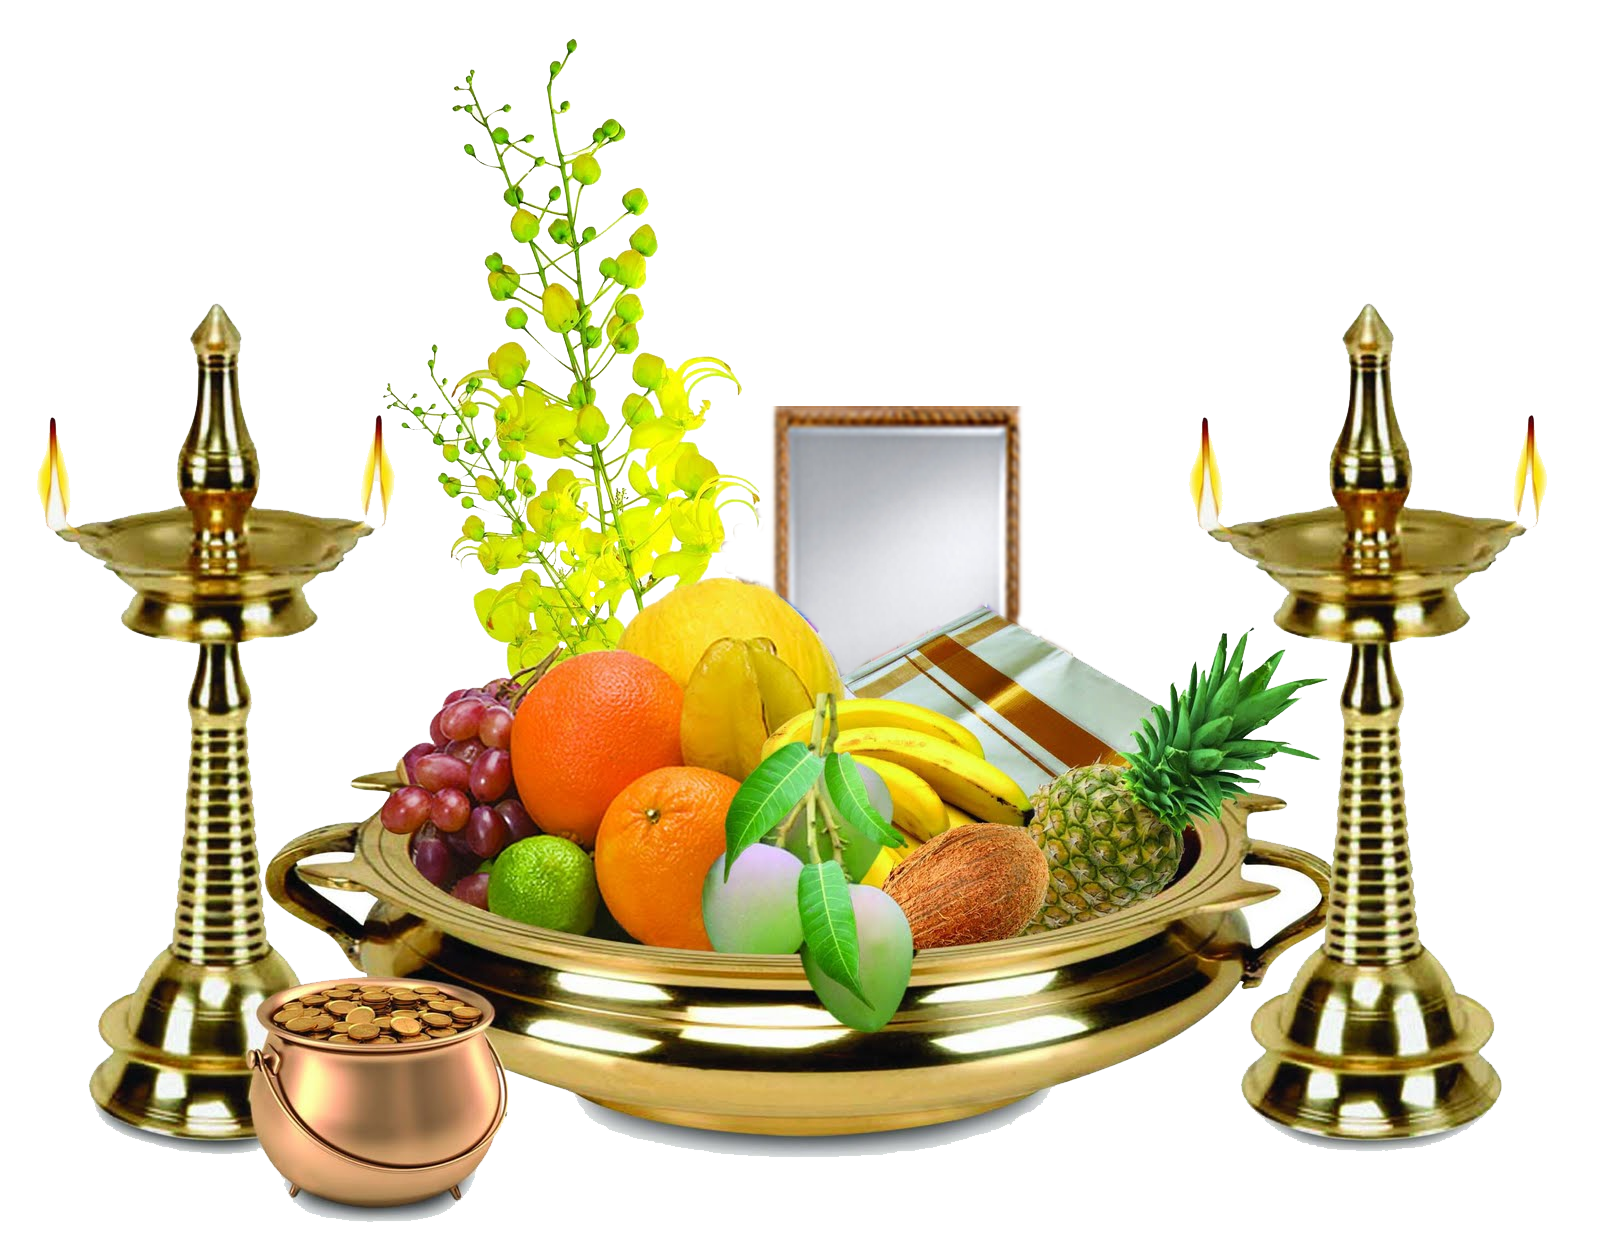 Happy Tamil New Year / Vishu.